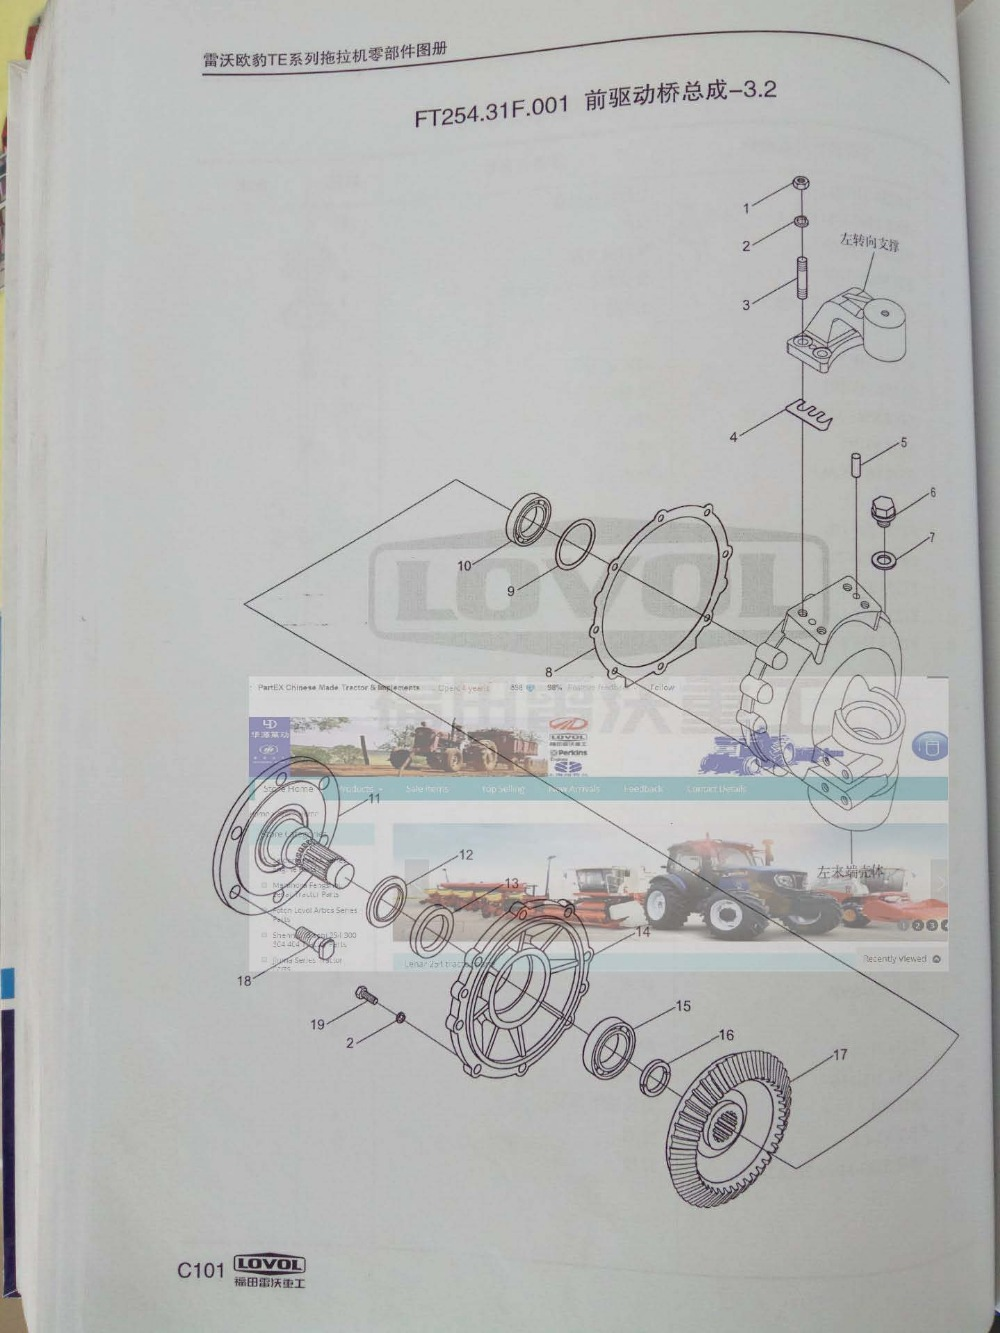 ... international tractor International Tractor Wiring Diagram on  international 706 tractor data, international tractor control diagram, ...